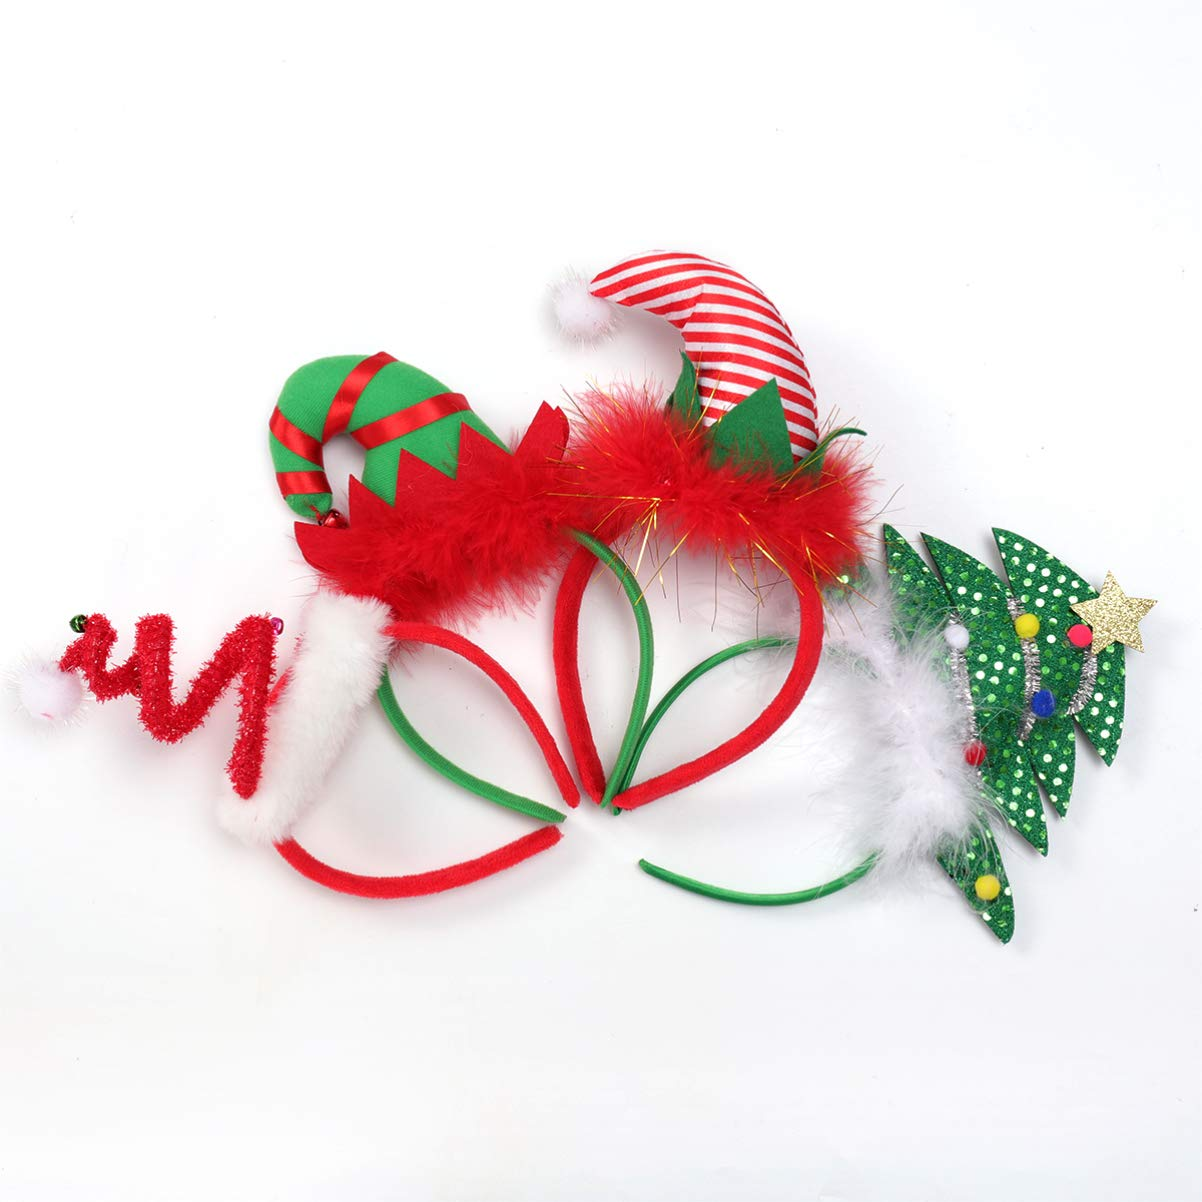 Christmas Headbands, Elf Hat Costume Headbands Christmas Party Favor for Adult Children 4 Pack